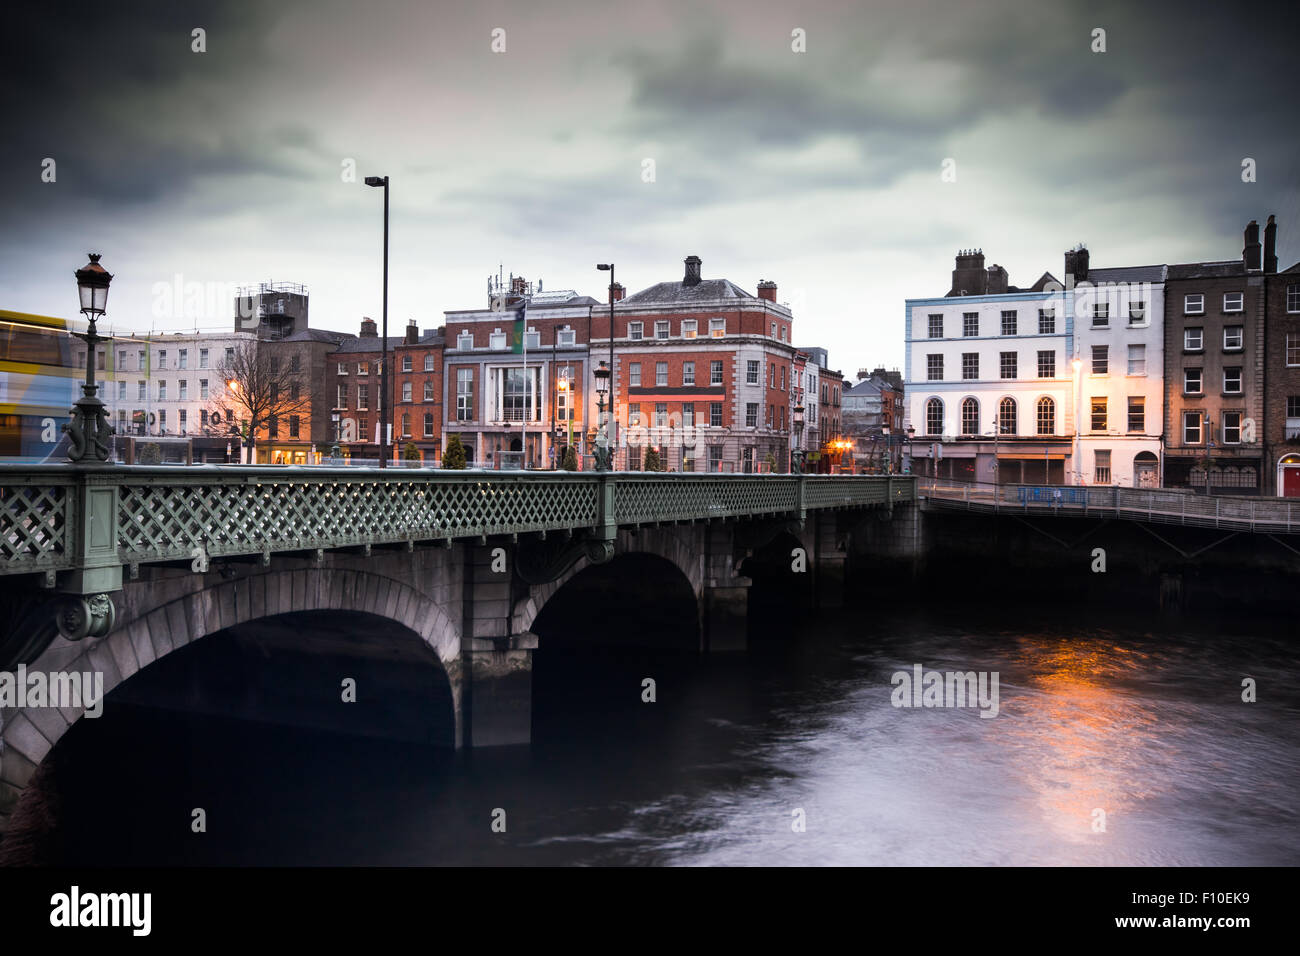 Grattan Bridge over the River Liffey in Dublin Ireland in the evening with vintage fliter effect - Stock Image